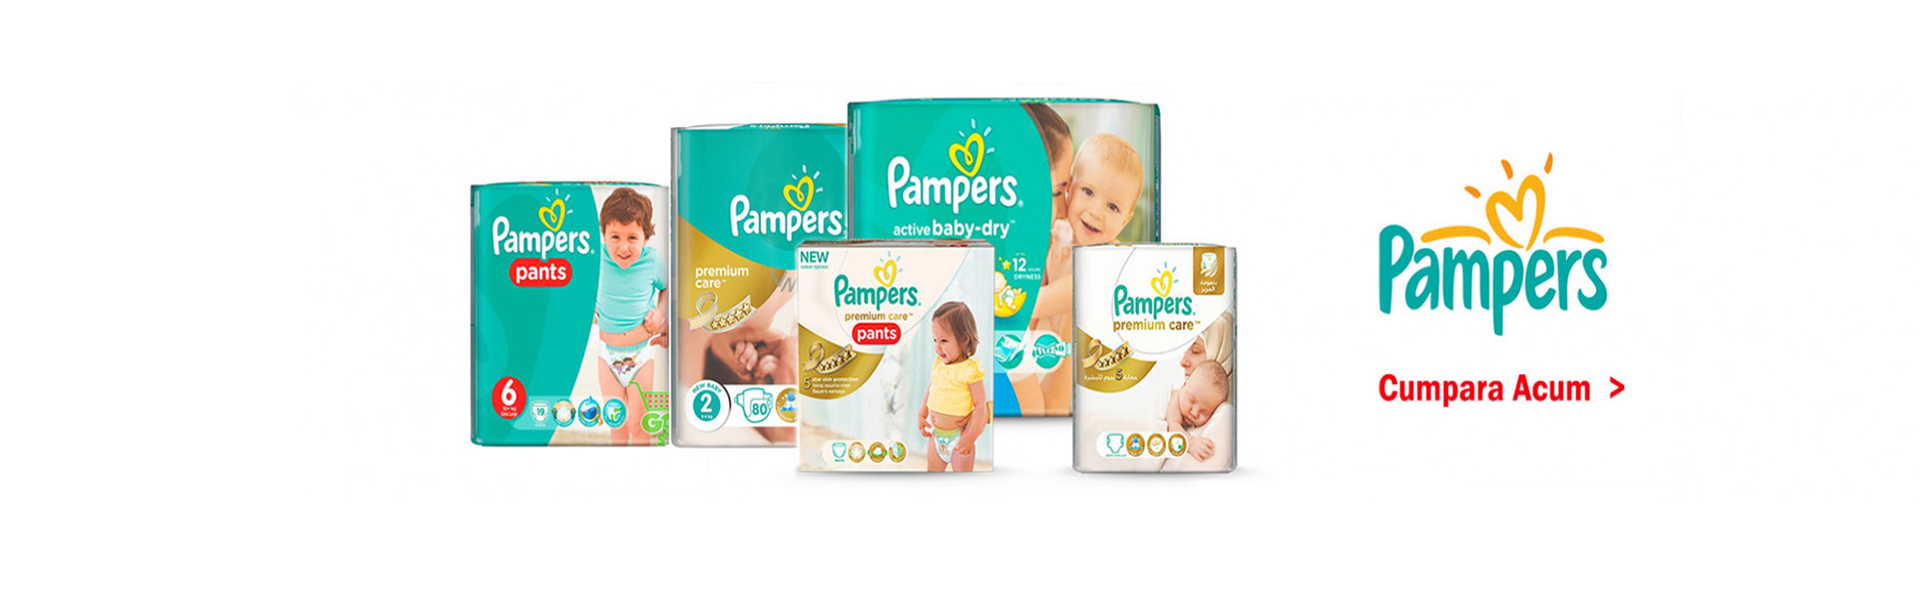 https://goshop.md/ro/category/scutece-pampersi-copii-42.html